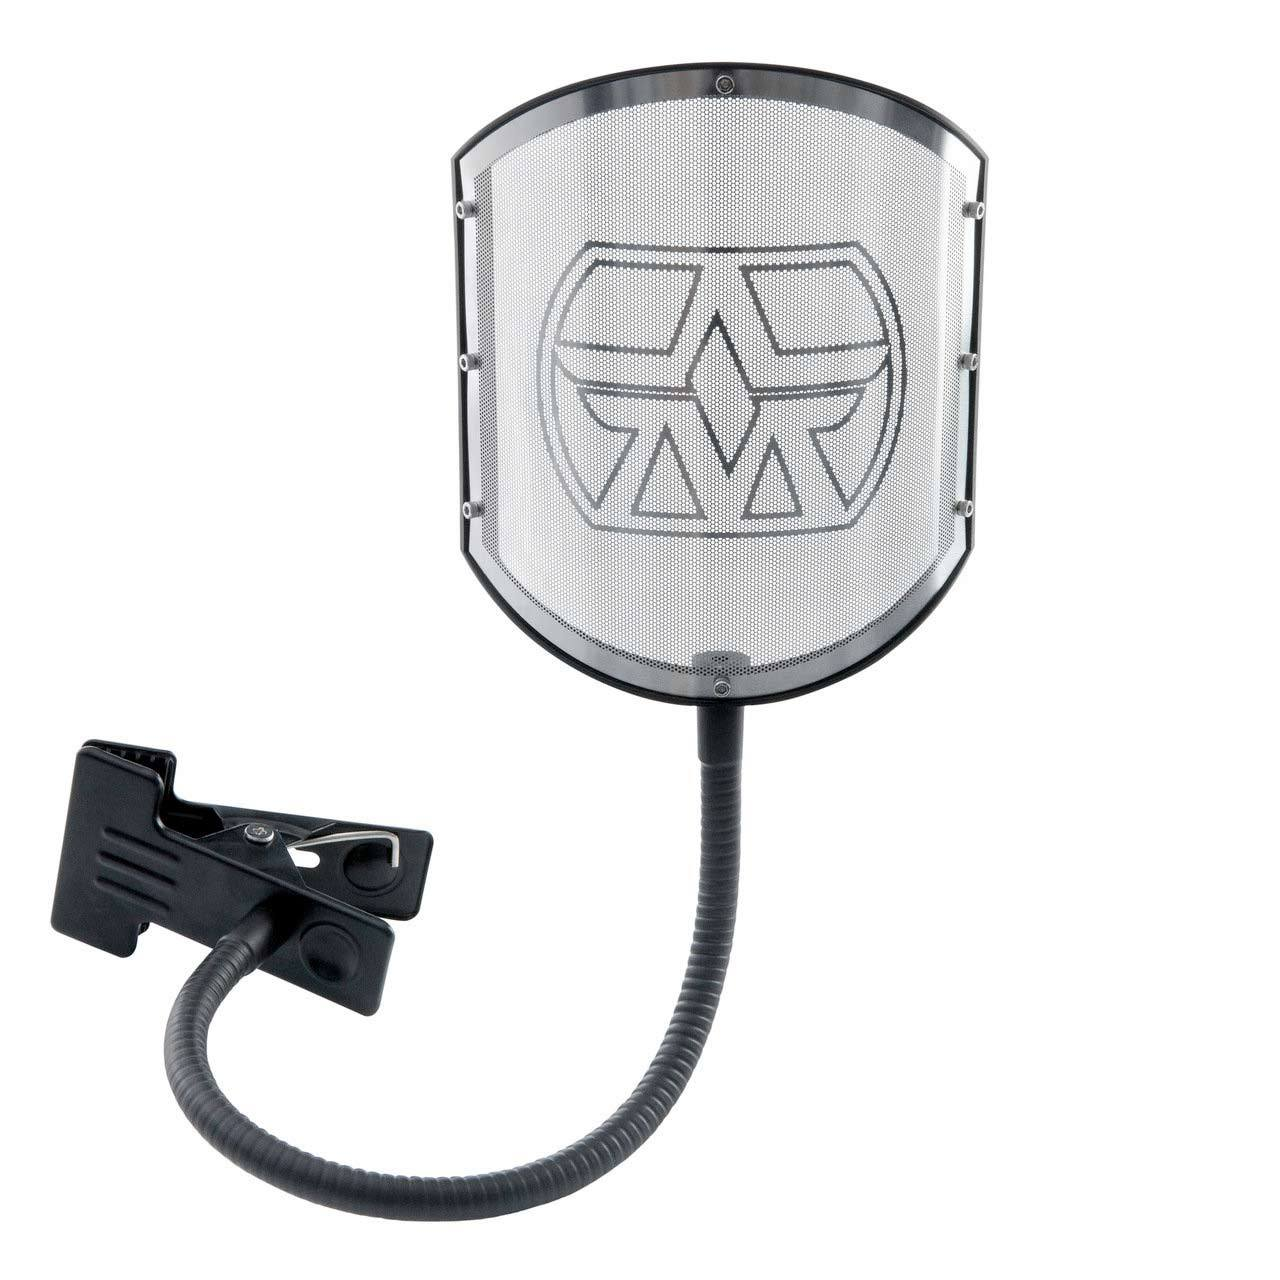 Microphone Accessories - Aston Shield GN - Steel Mesh Pop Filter